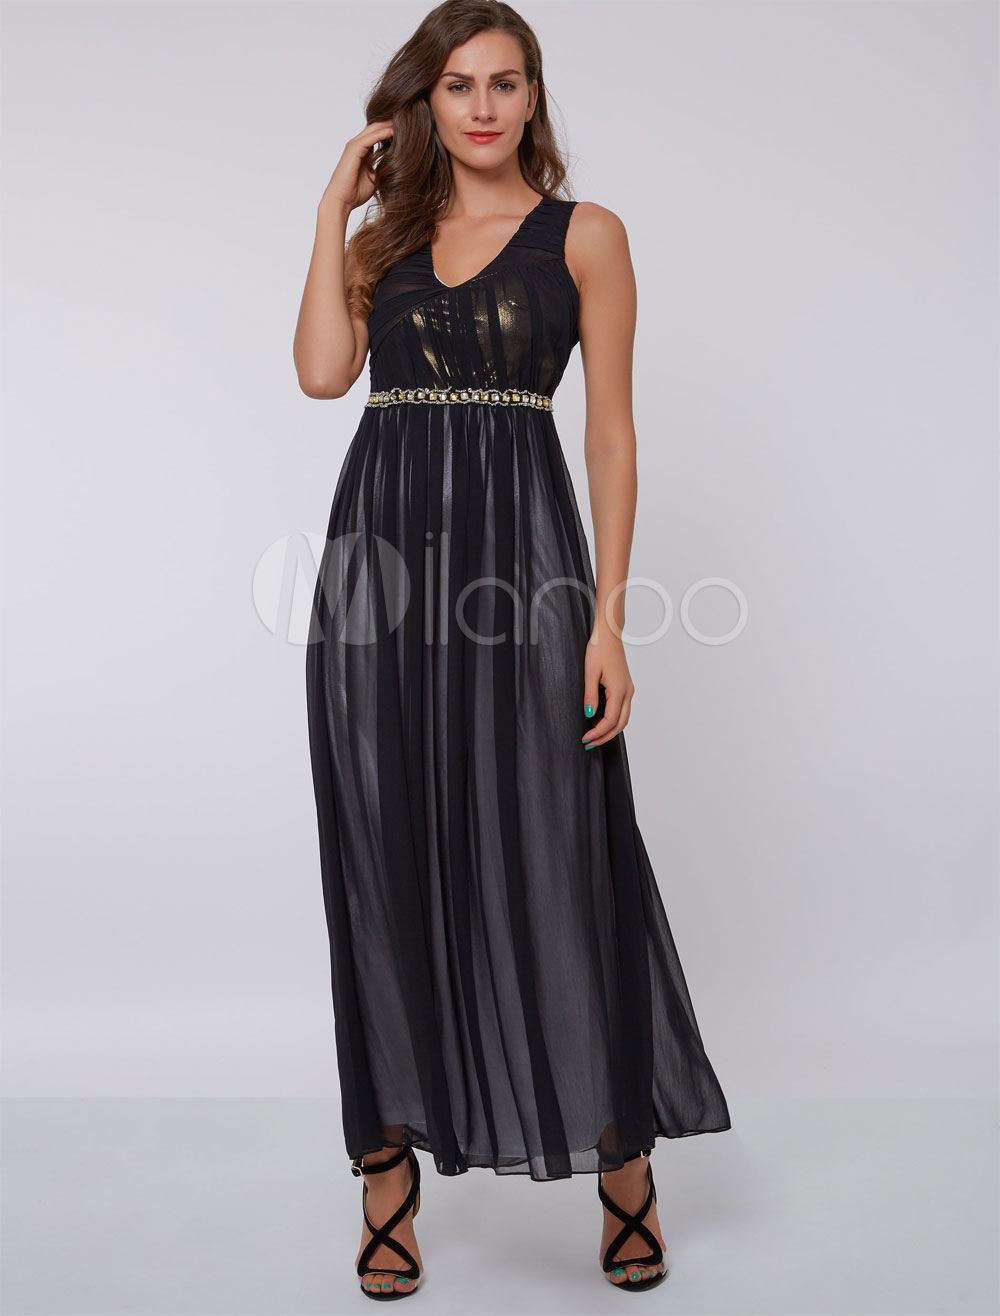 Mother Of The Bride Dresses Black V Neck Backless Beading Pleated Wedding Guest Dress